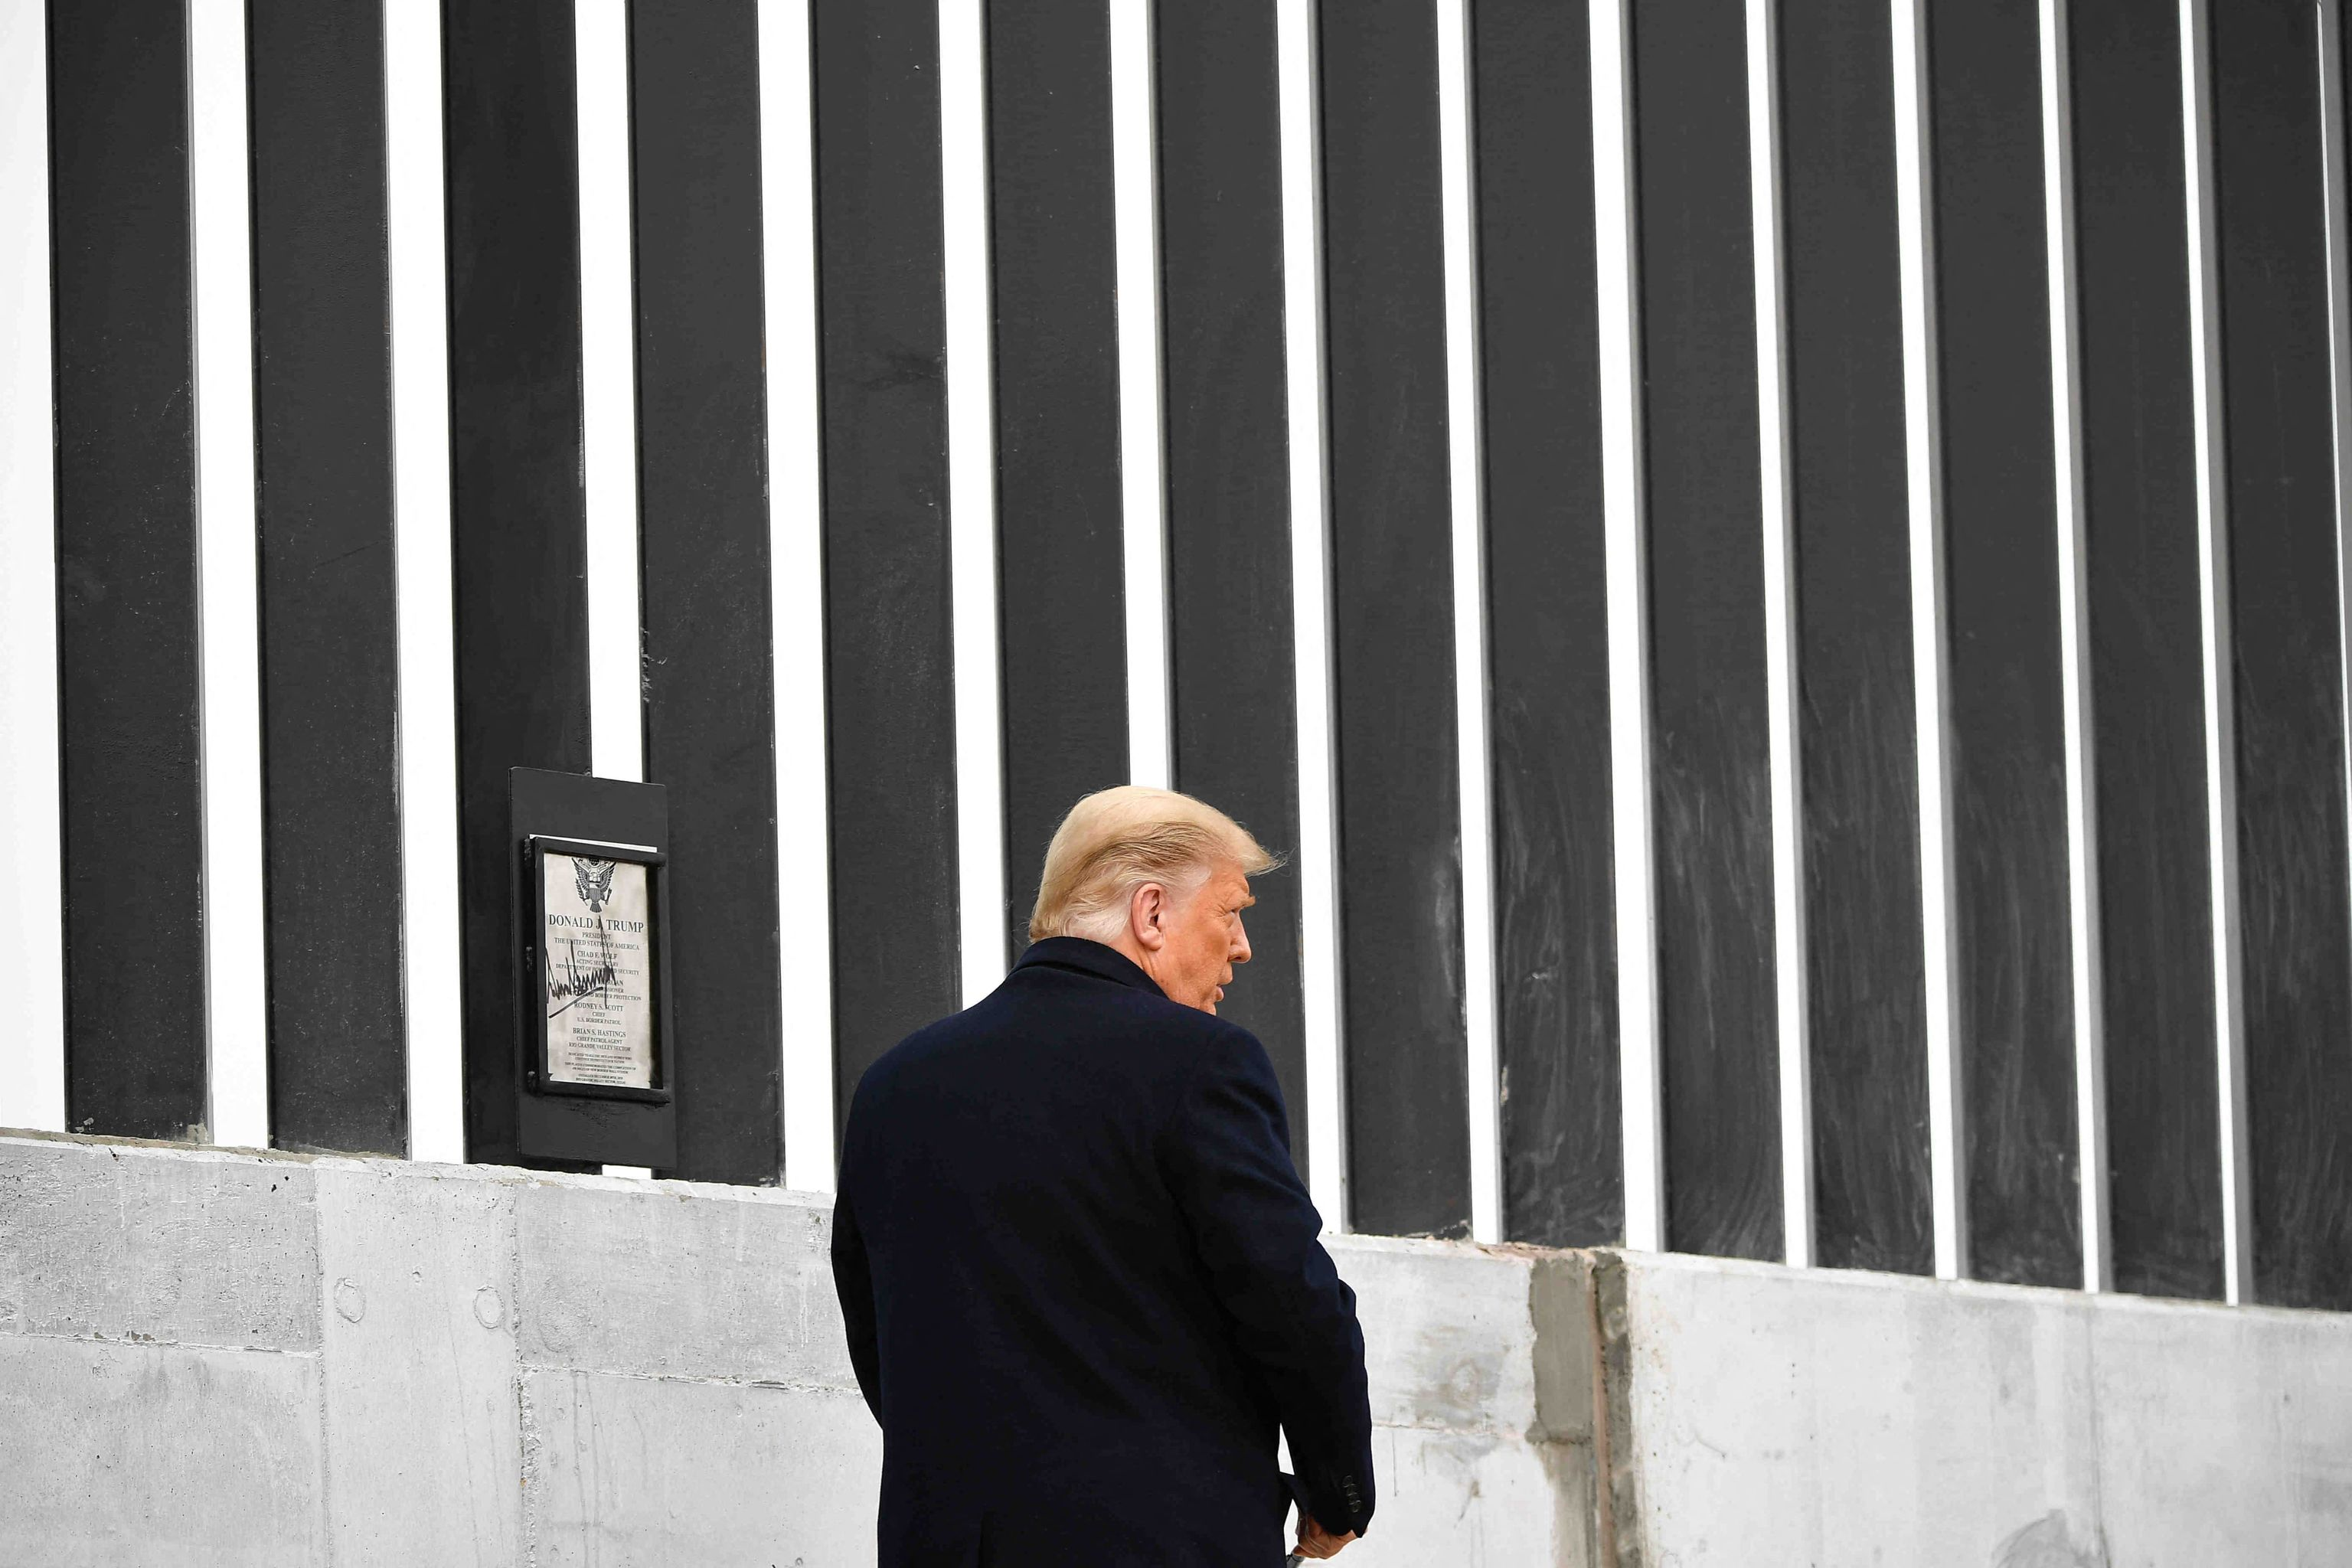 Donald Trump visits the border wall with M